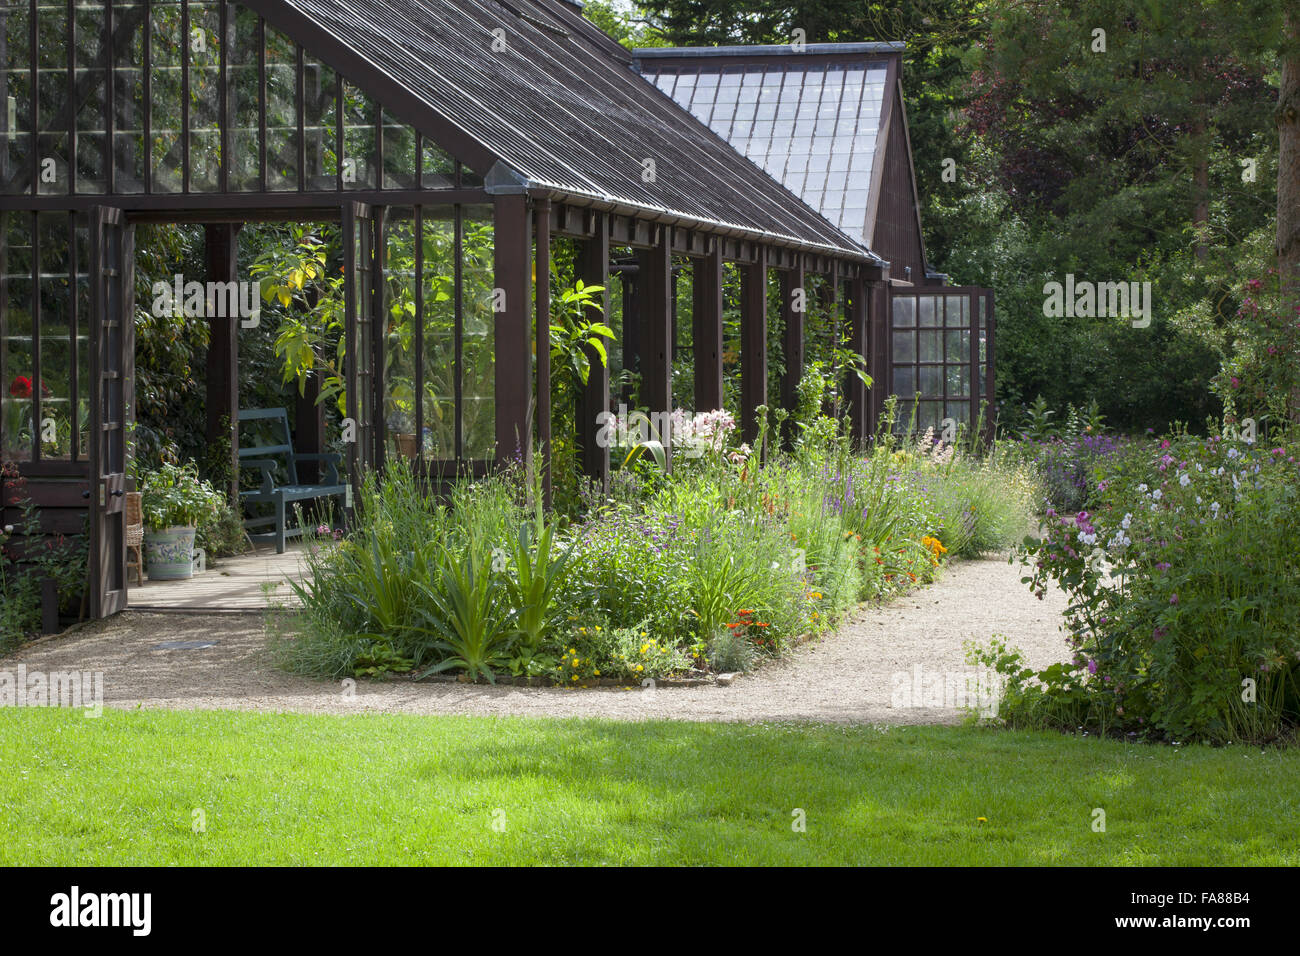 The Plant House at Hidcote, Gloucestershire. - Stock Image